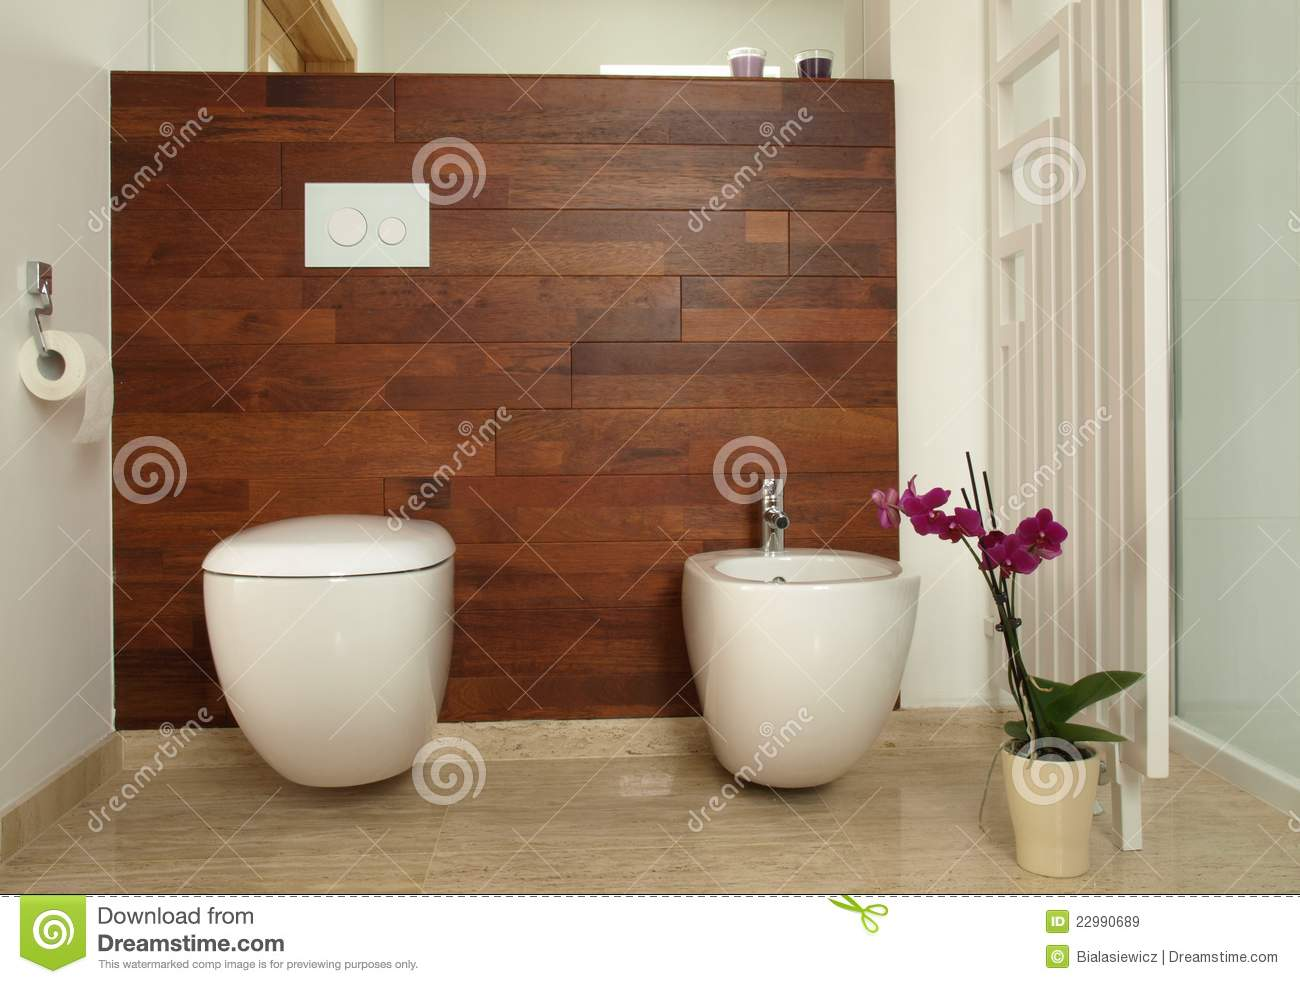 salle de bains moderne avec la toilette et le bidet image stock image du bougies contemporain. Black Bedroom Furniture Sets. Home Design Ideas